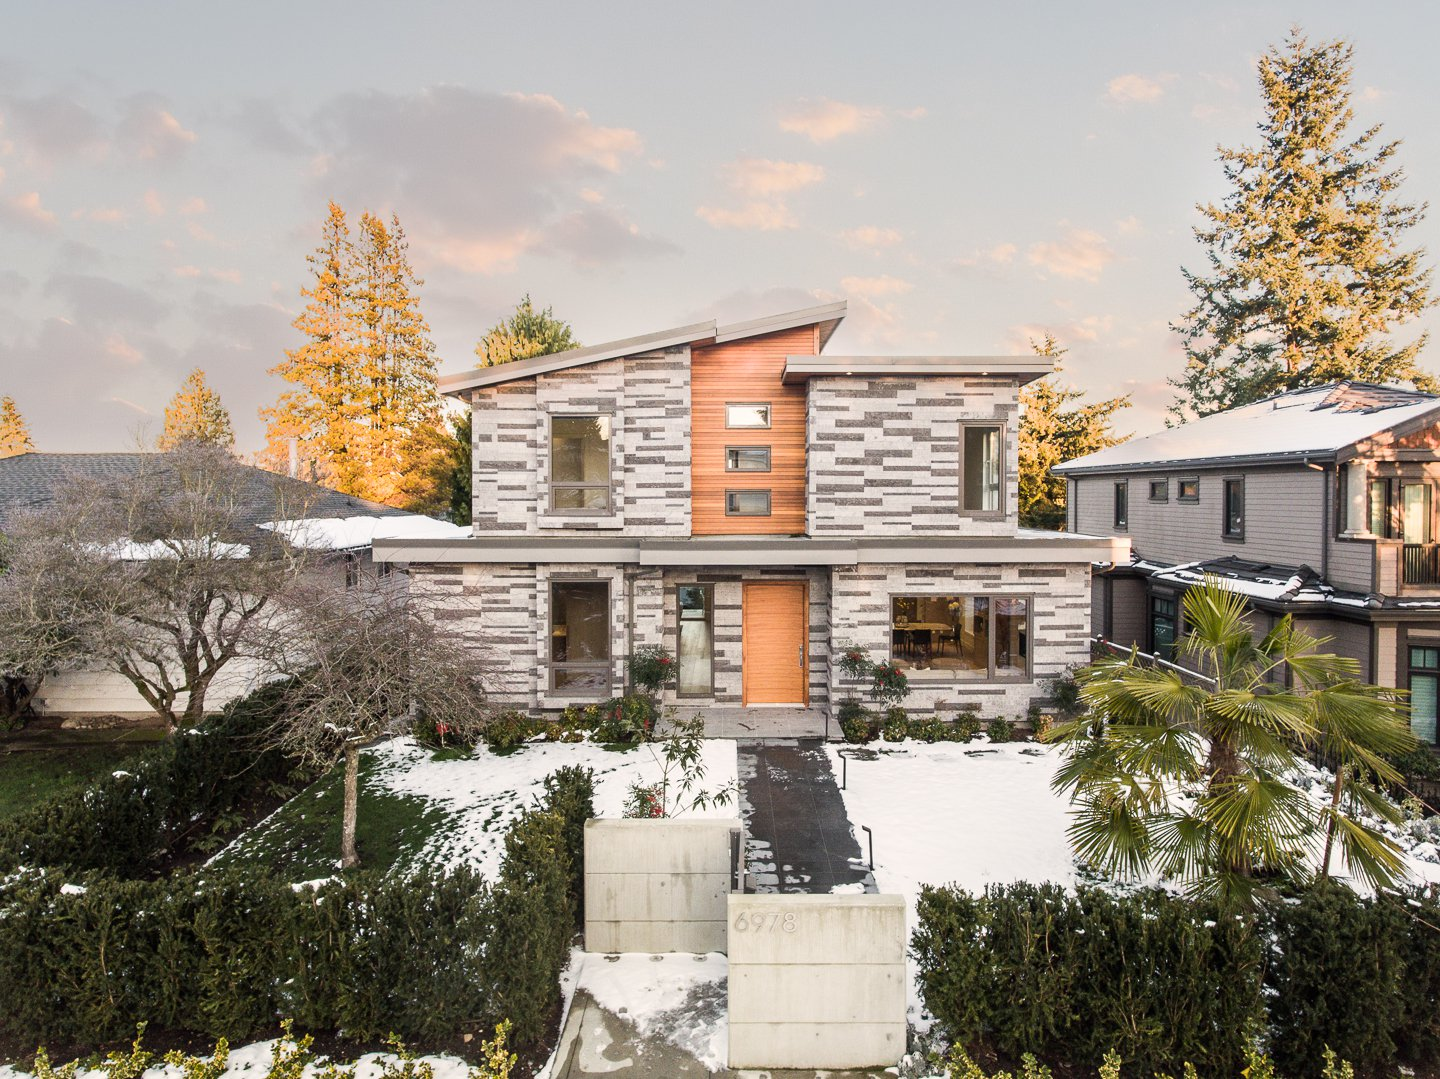 Main Photo: 6978 LAUREL ST in VANCOUVER: South Cambie House for sale (Vancouver West)